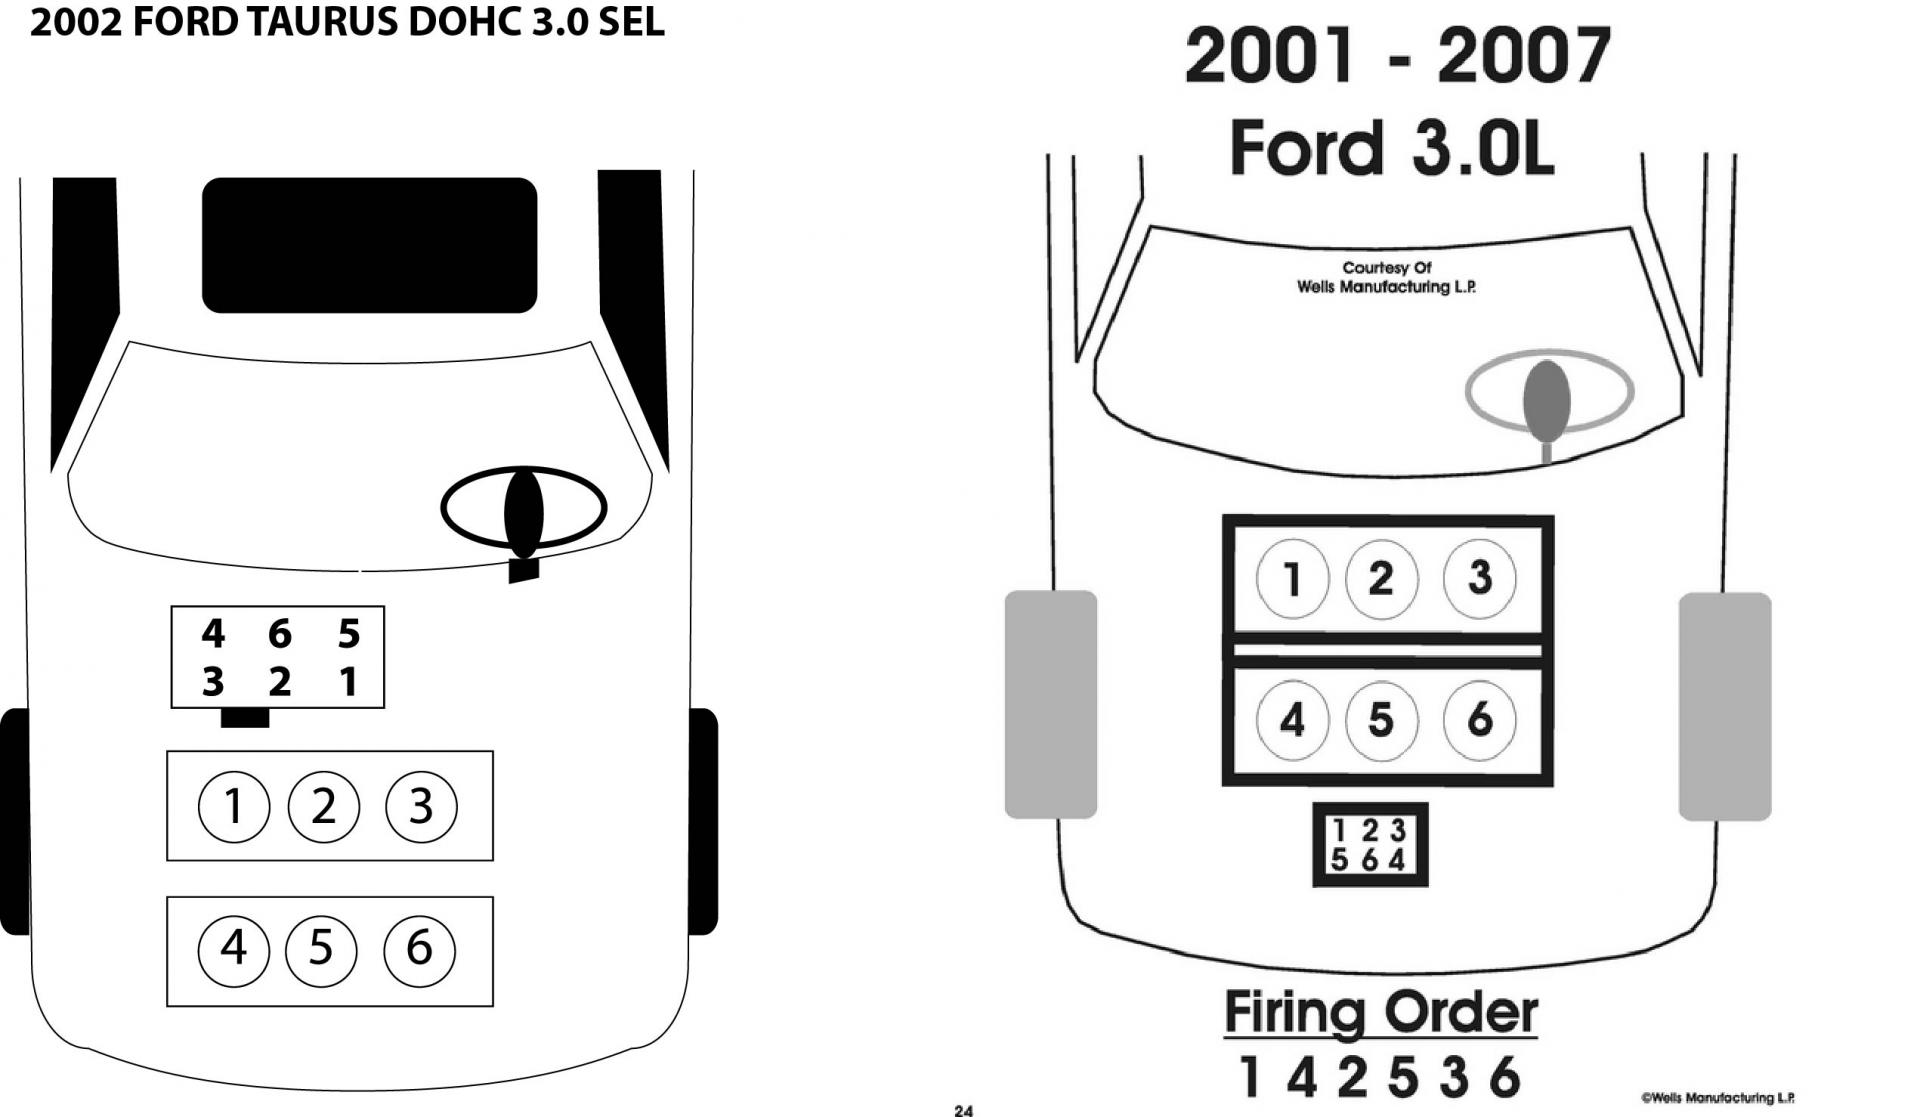 2002 taurus engine light misfire 302 303 - page 4